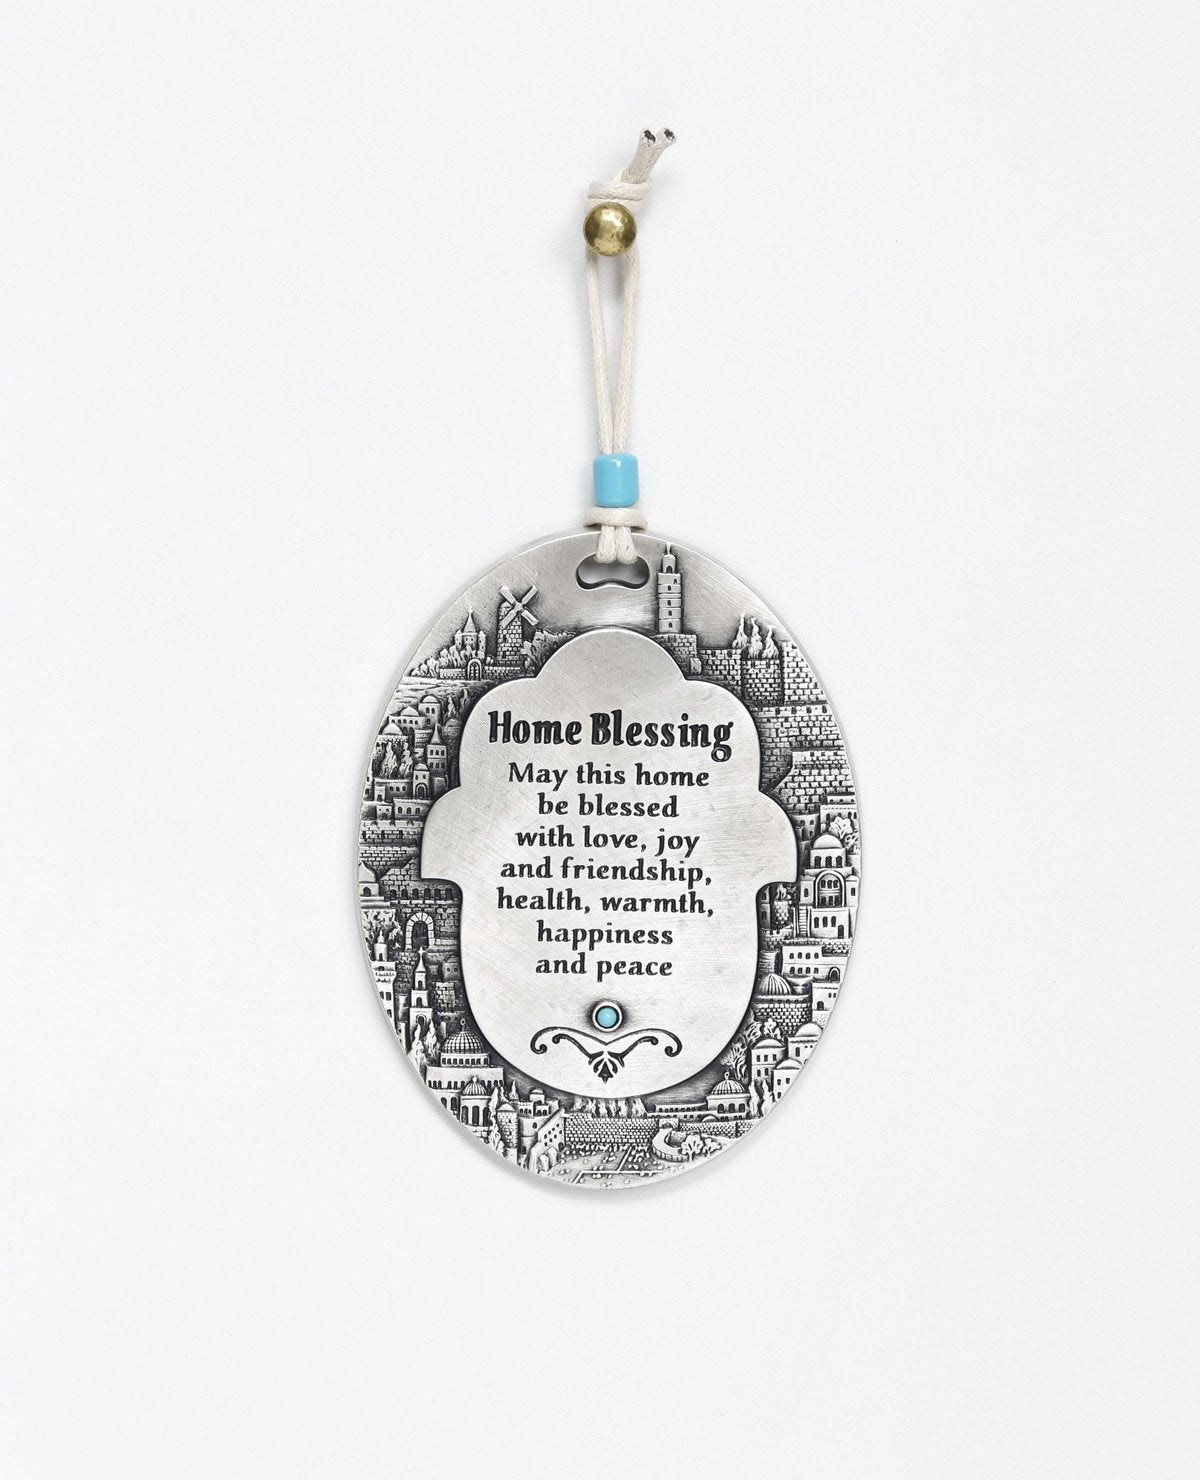 A spectacularly beautiful hanging Home Blessing ornament in English, in the shape of an oval plate. The plate is embedded around its edges with an outline of the sights of Jerusalem, and in the center a Hamsa upon which appear blessing words for love, friendship, joy, health, happiness and peace. Makes a very welcoming gift for the home intended for the people we hold dear, far or near. The hanging ornament is coated in sterling silver and embedded with a turquoise colored Swarovski crystal. Comes with a na